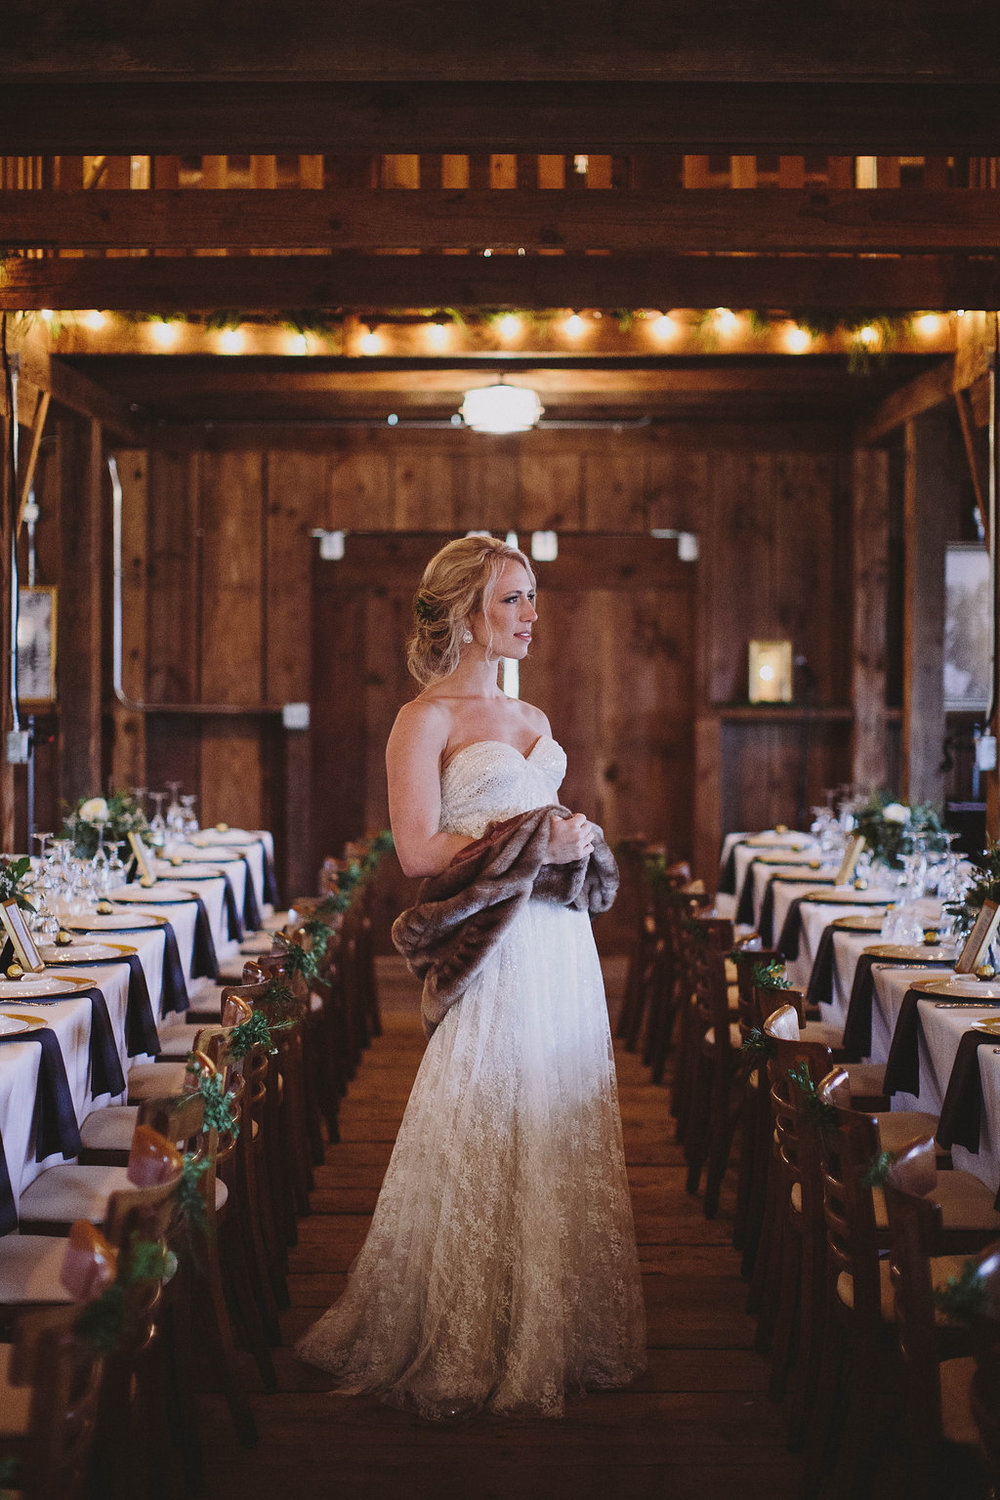 Wedding barn in Eugene, Oregon